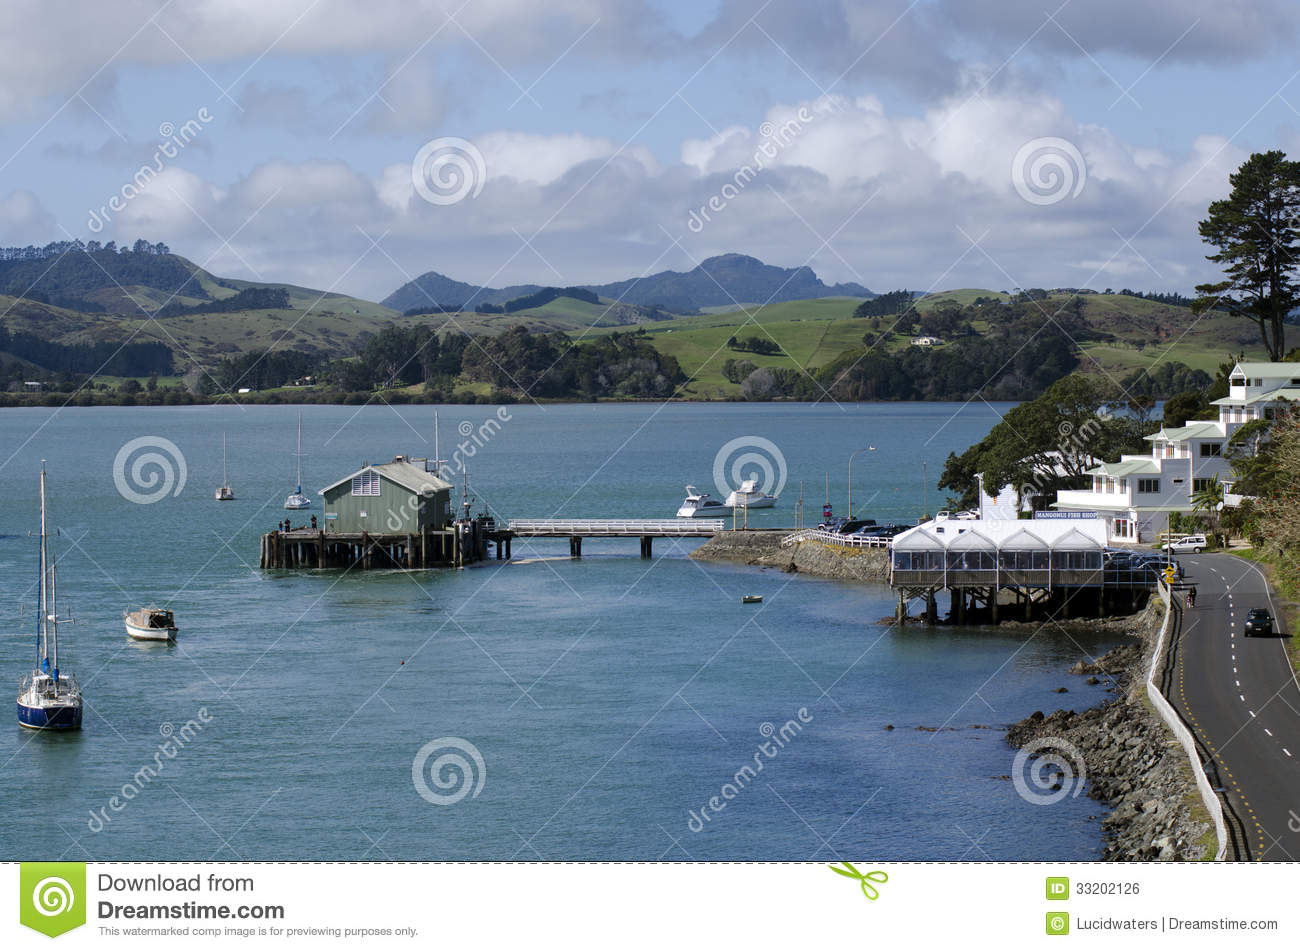 Mangonui New Zealand  city photos gallery : MANGONUI, NZ AUG 24:Aerial landscape view of Mangonui harbor on Aug ...